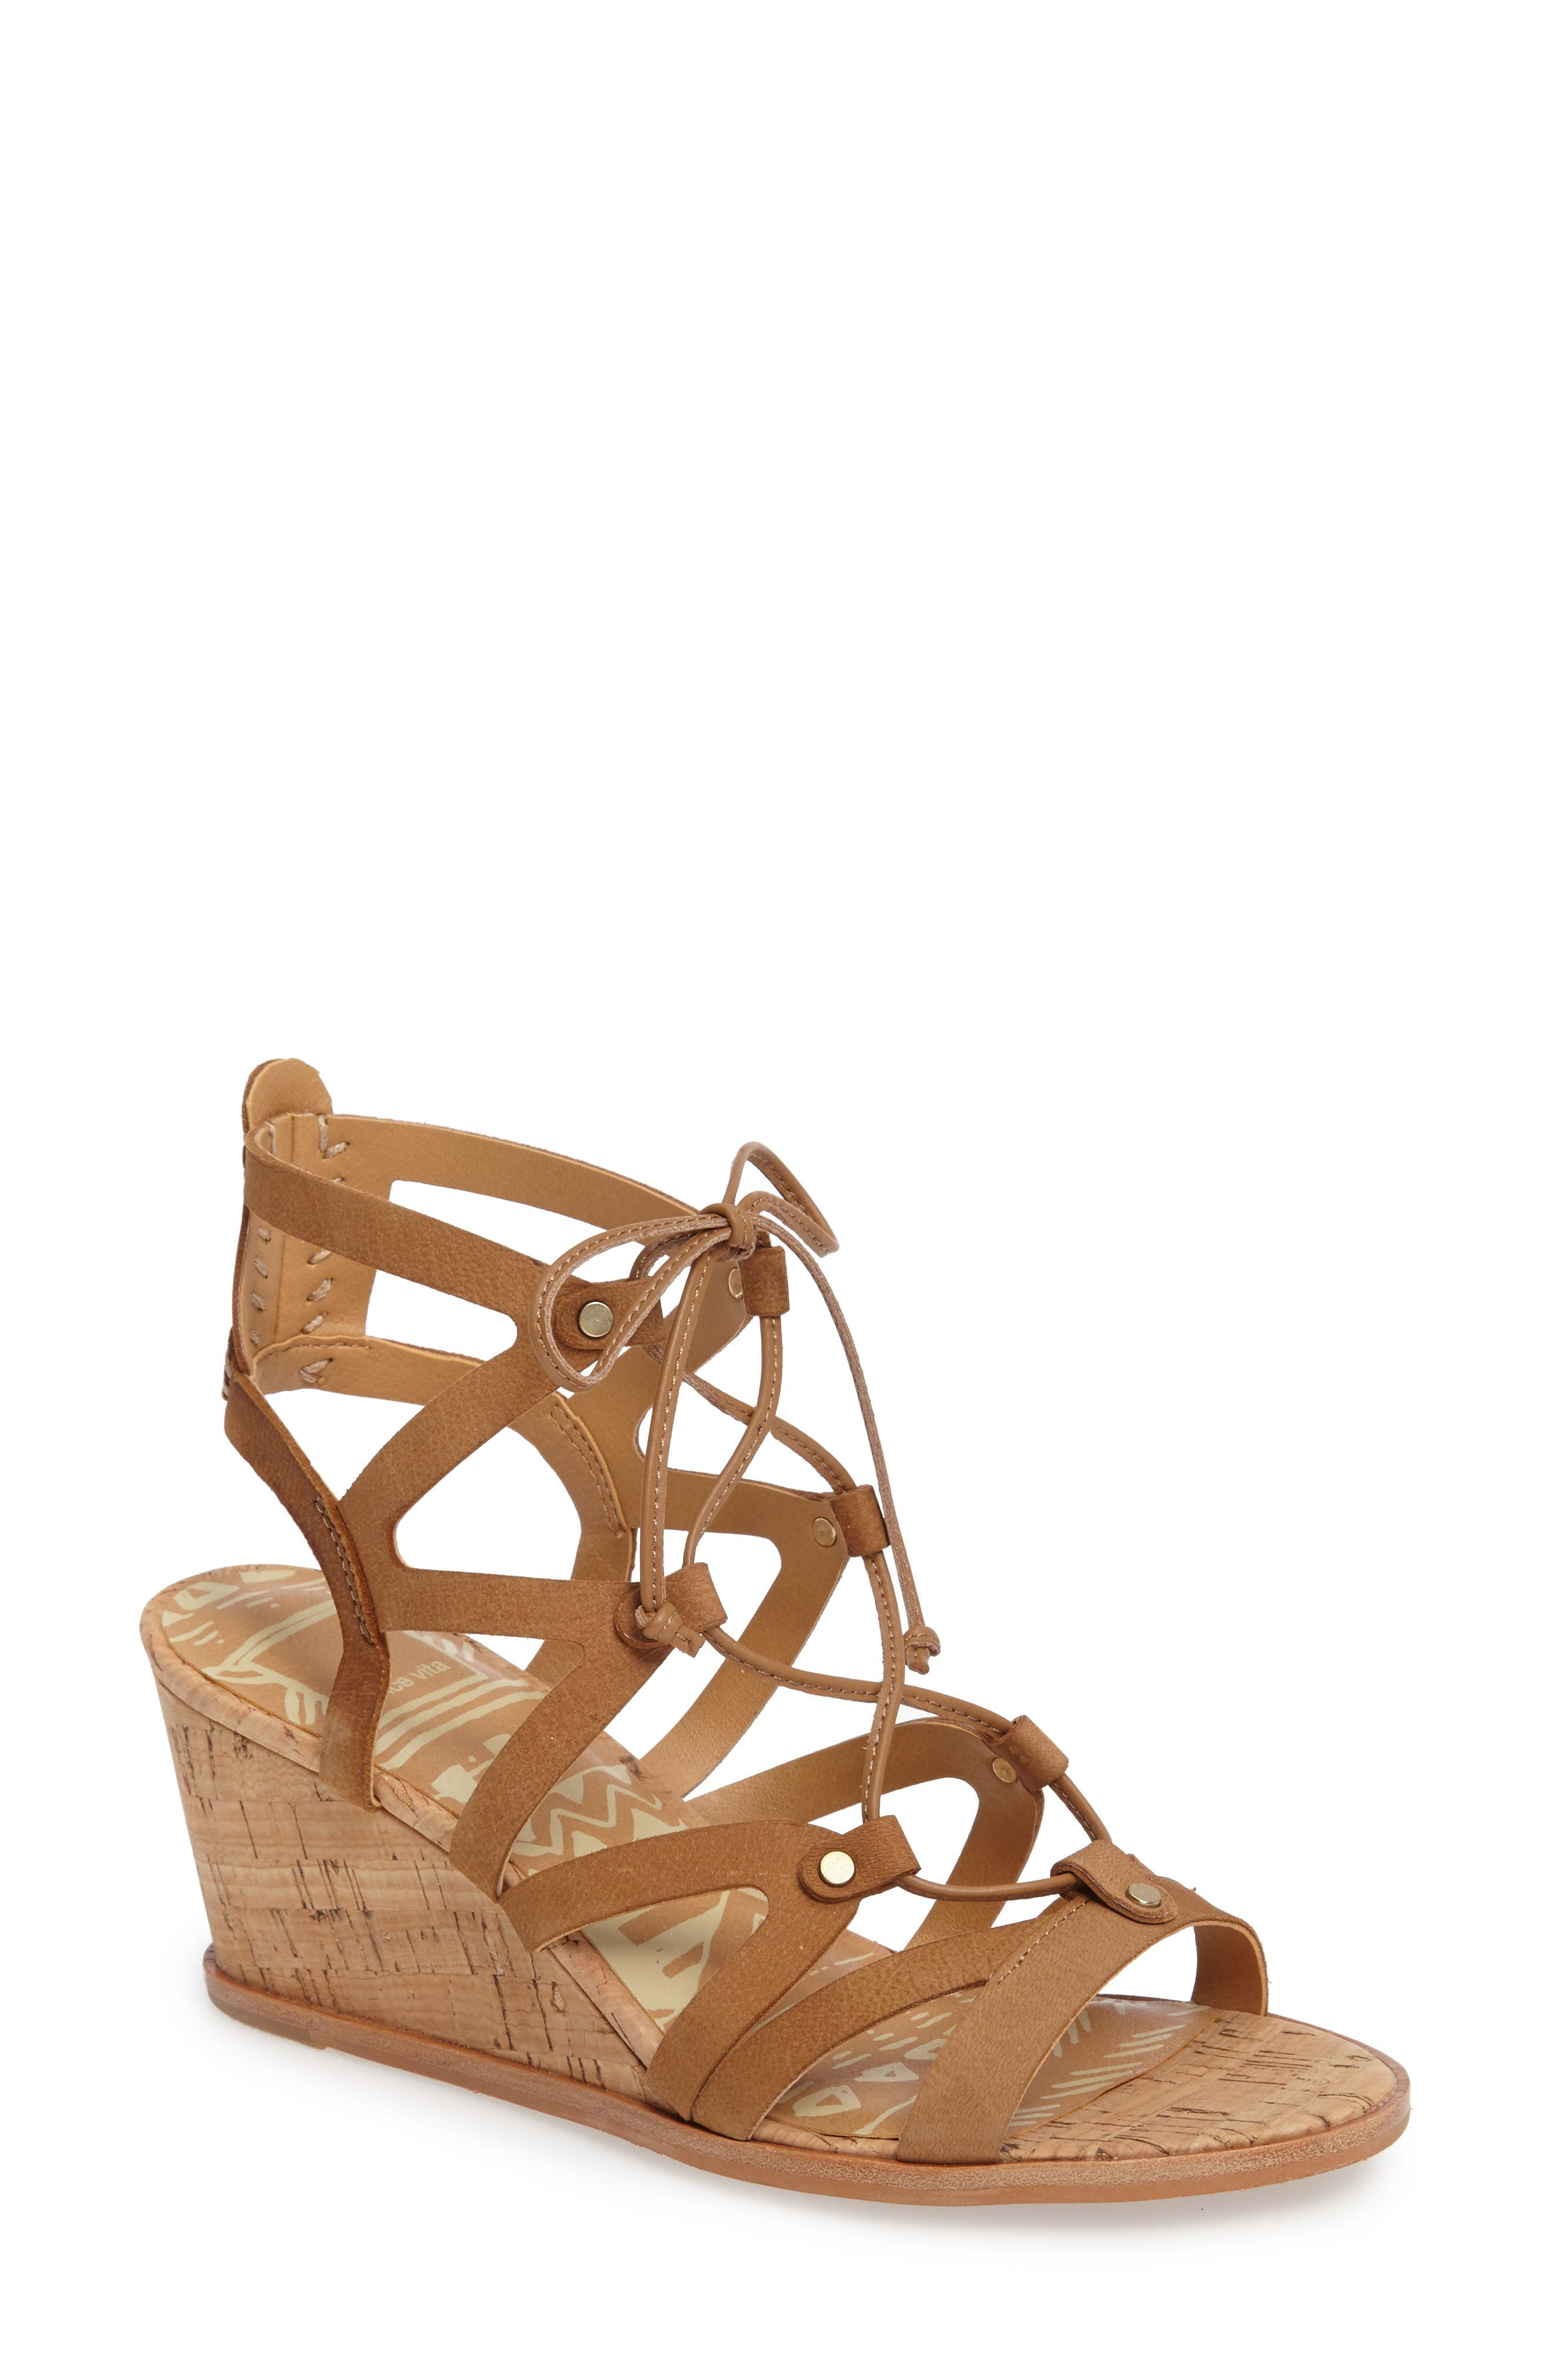 Alternate Image 1 Selected - Dolce Vita Lynnie Wedge Sandal (Women)